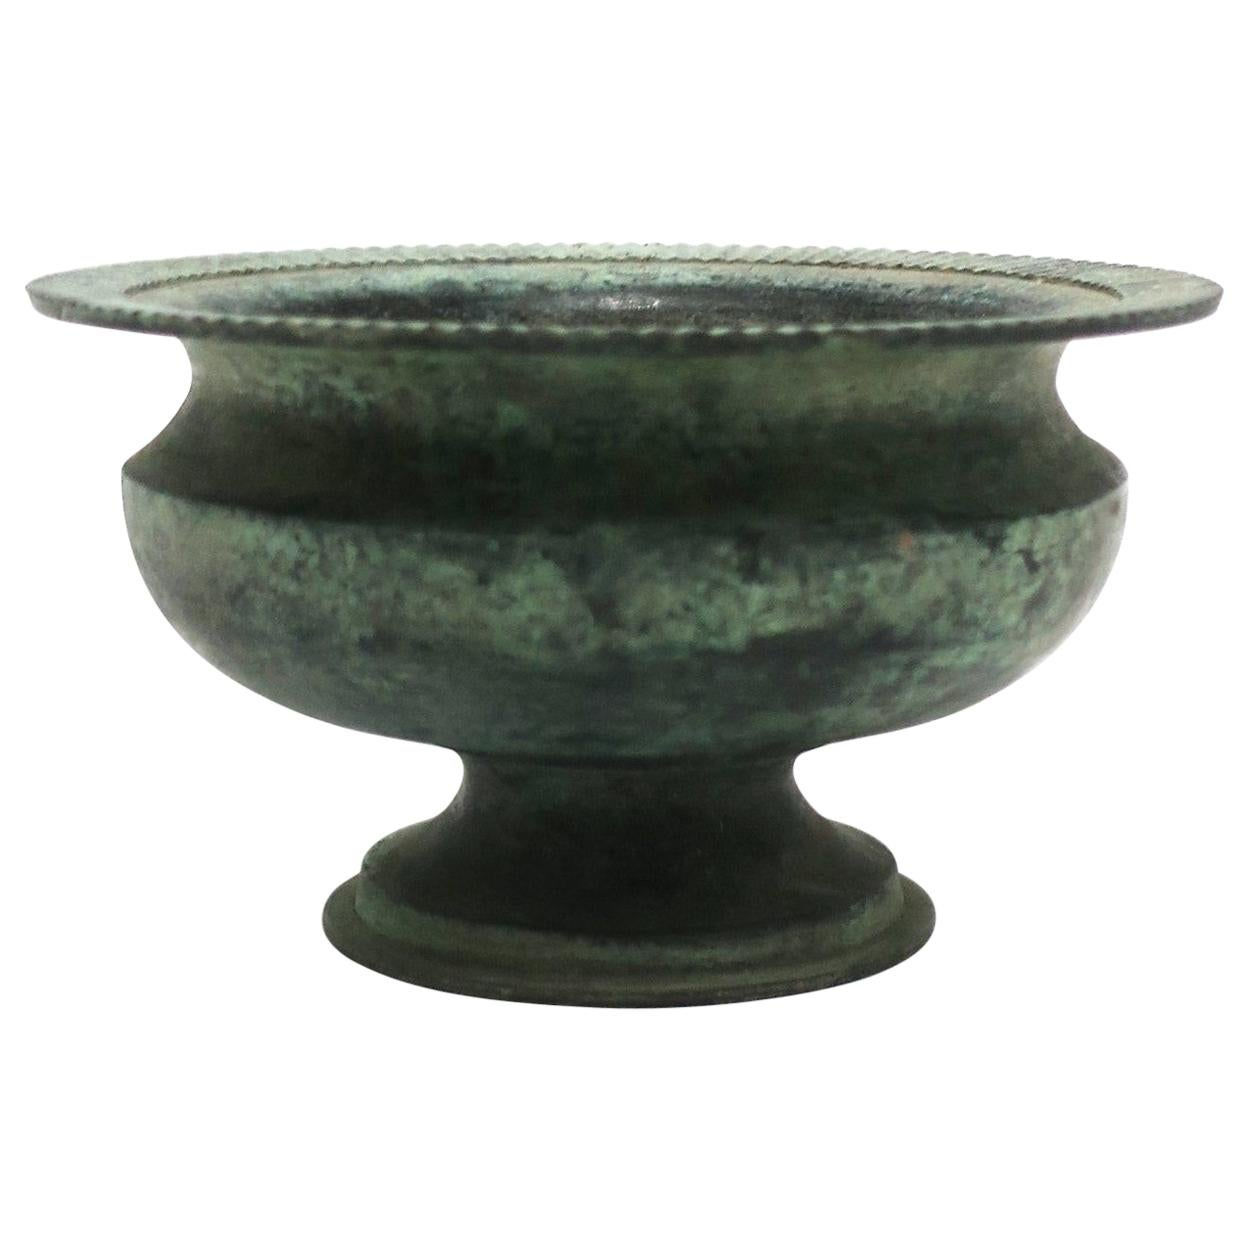 Bronze Urn Plant or Flower Pot Holder Cachepot Jardinière